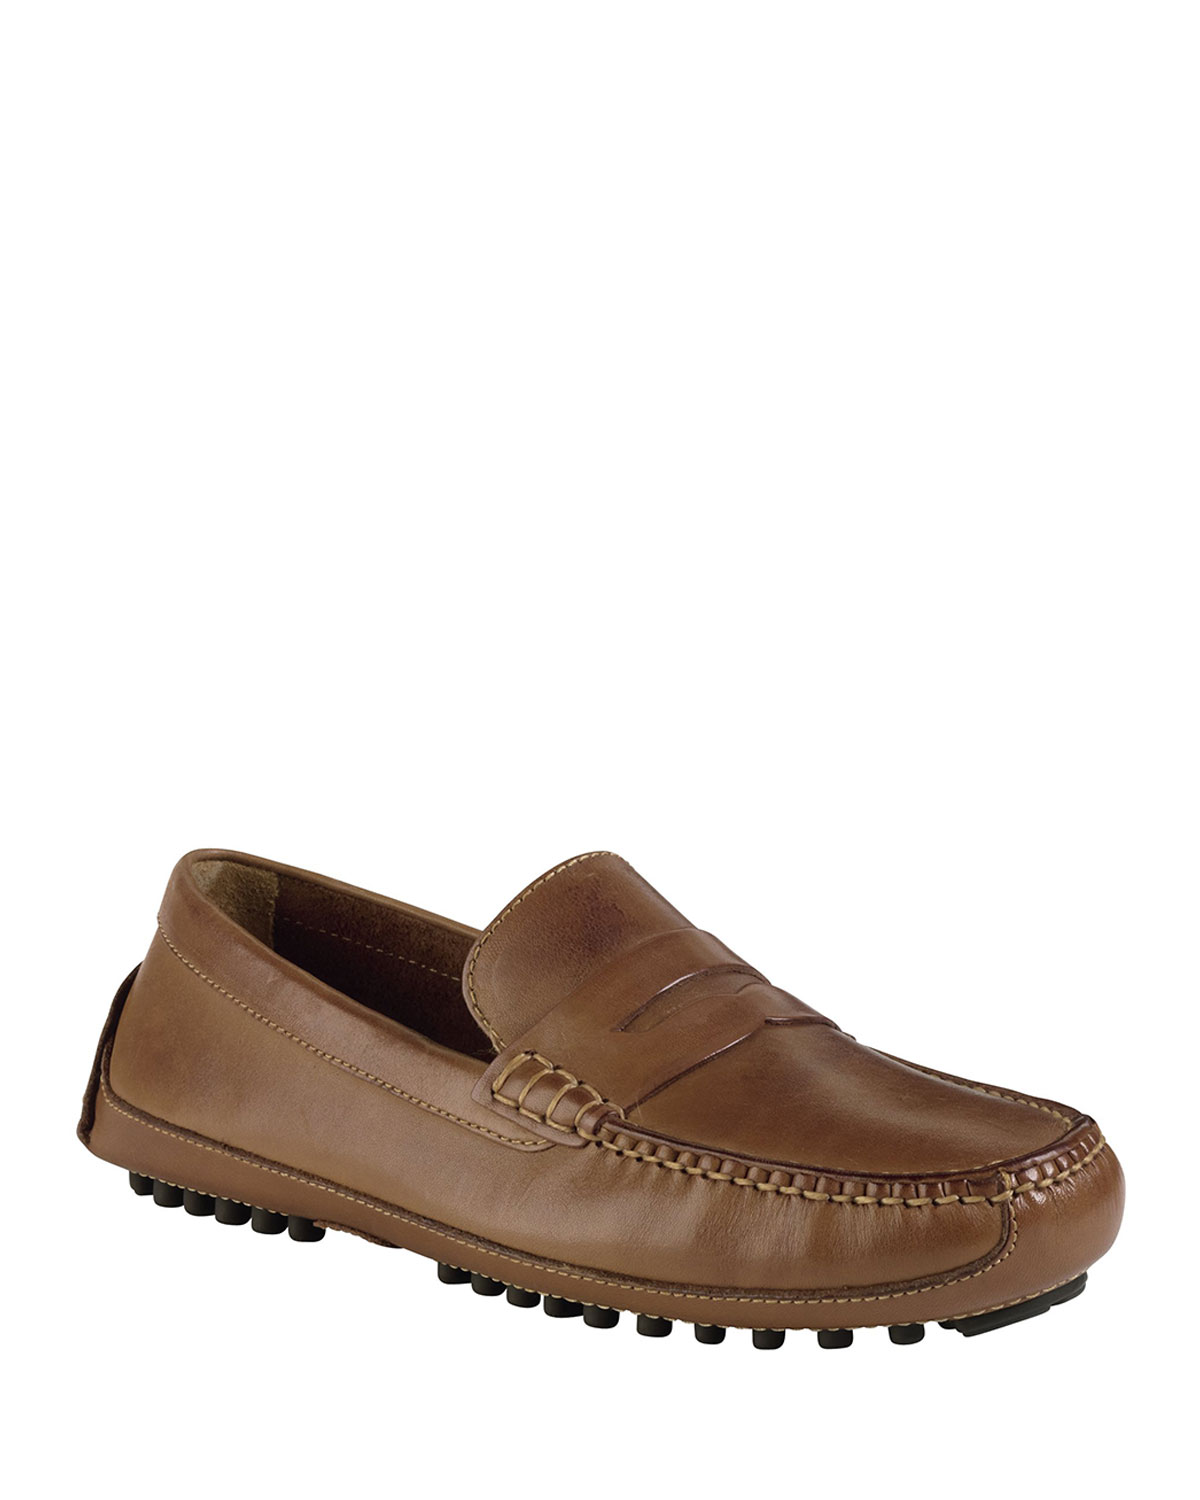 270e1eb3745 Cole Haan Grant Canoe Penny Loafer